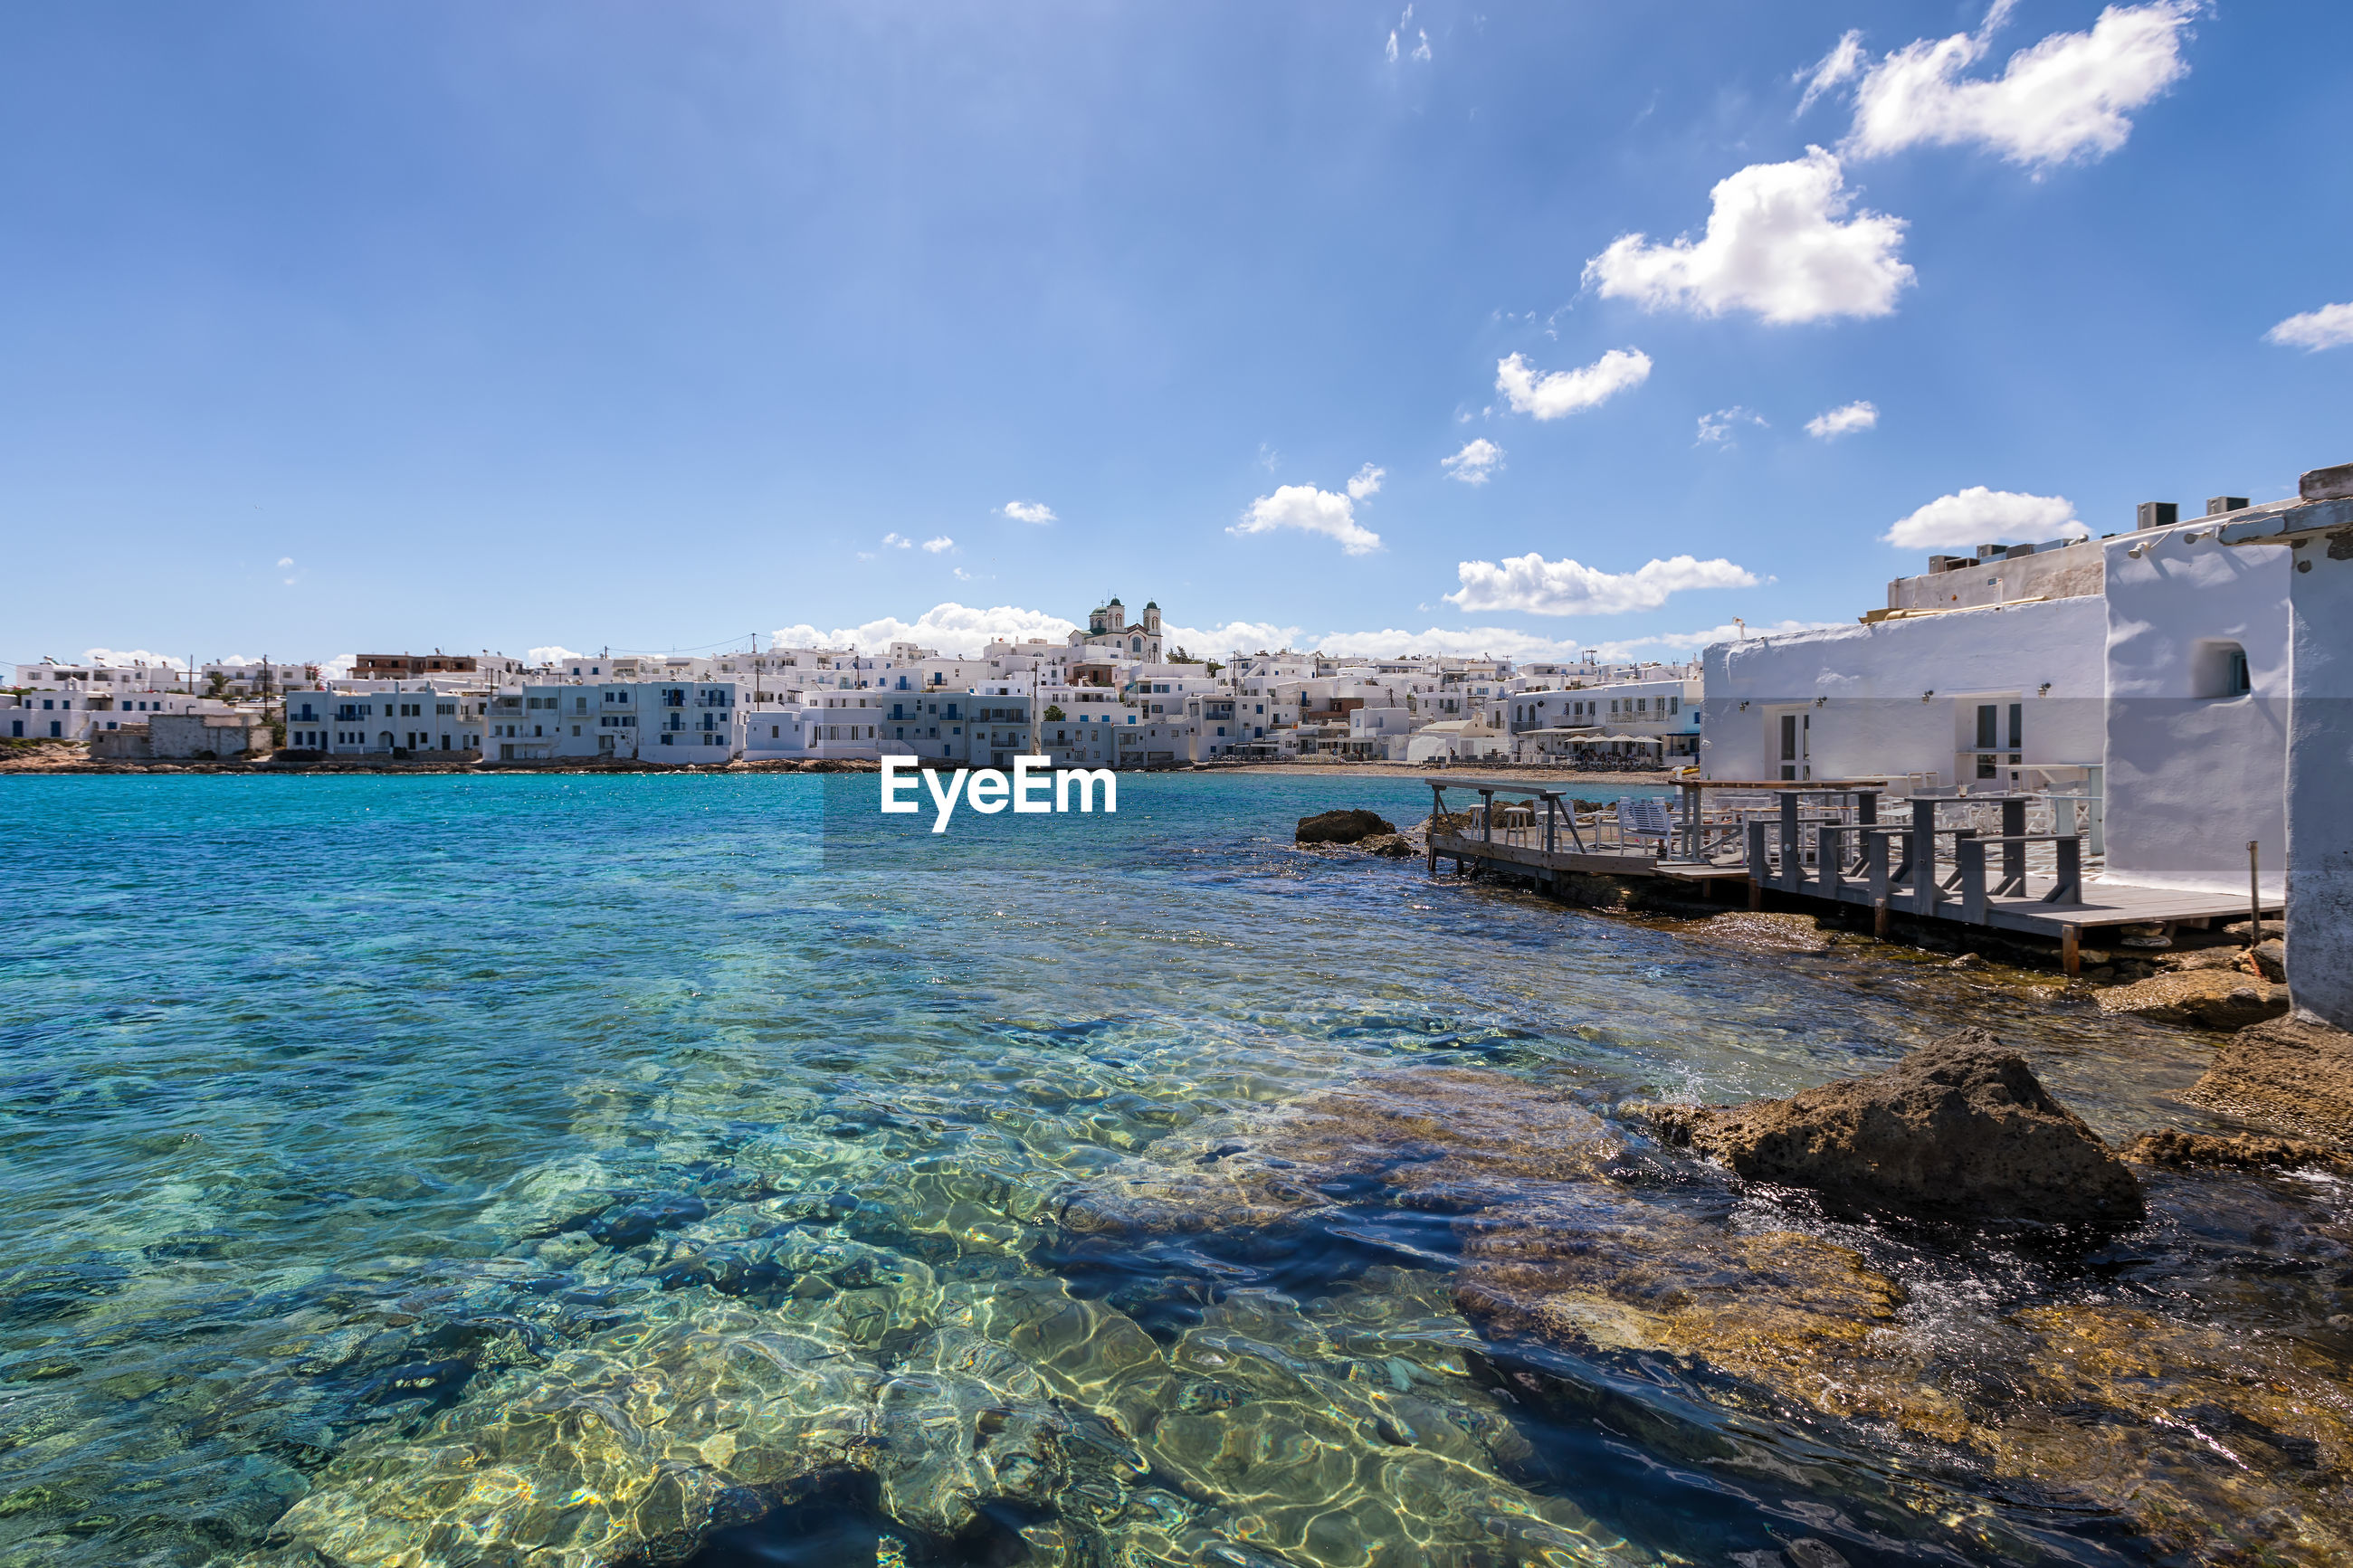 SCENIC VIEW OF SEA AGAINST BUILDINGS